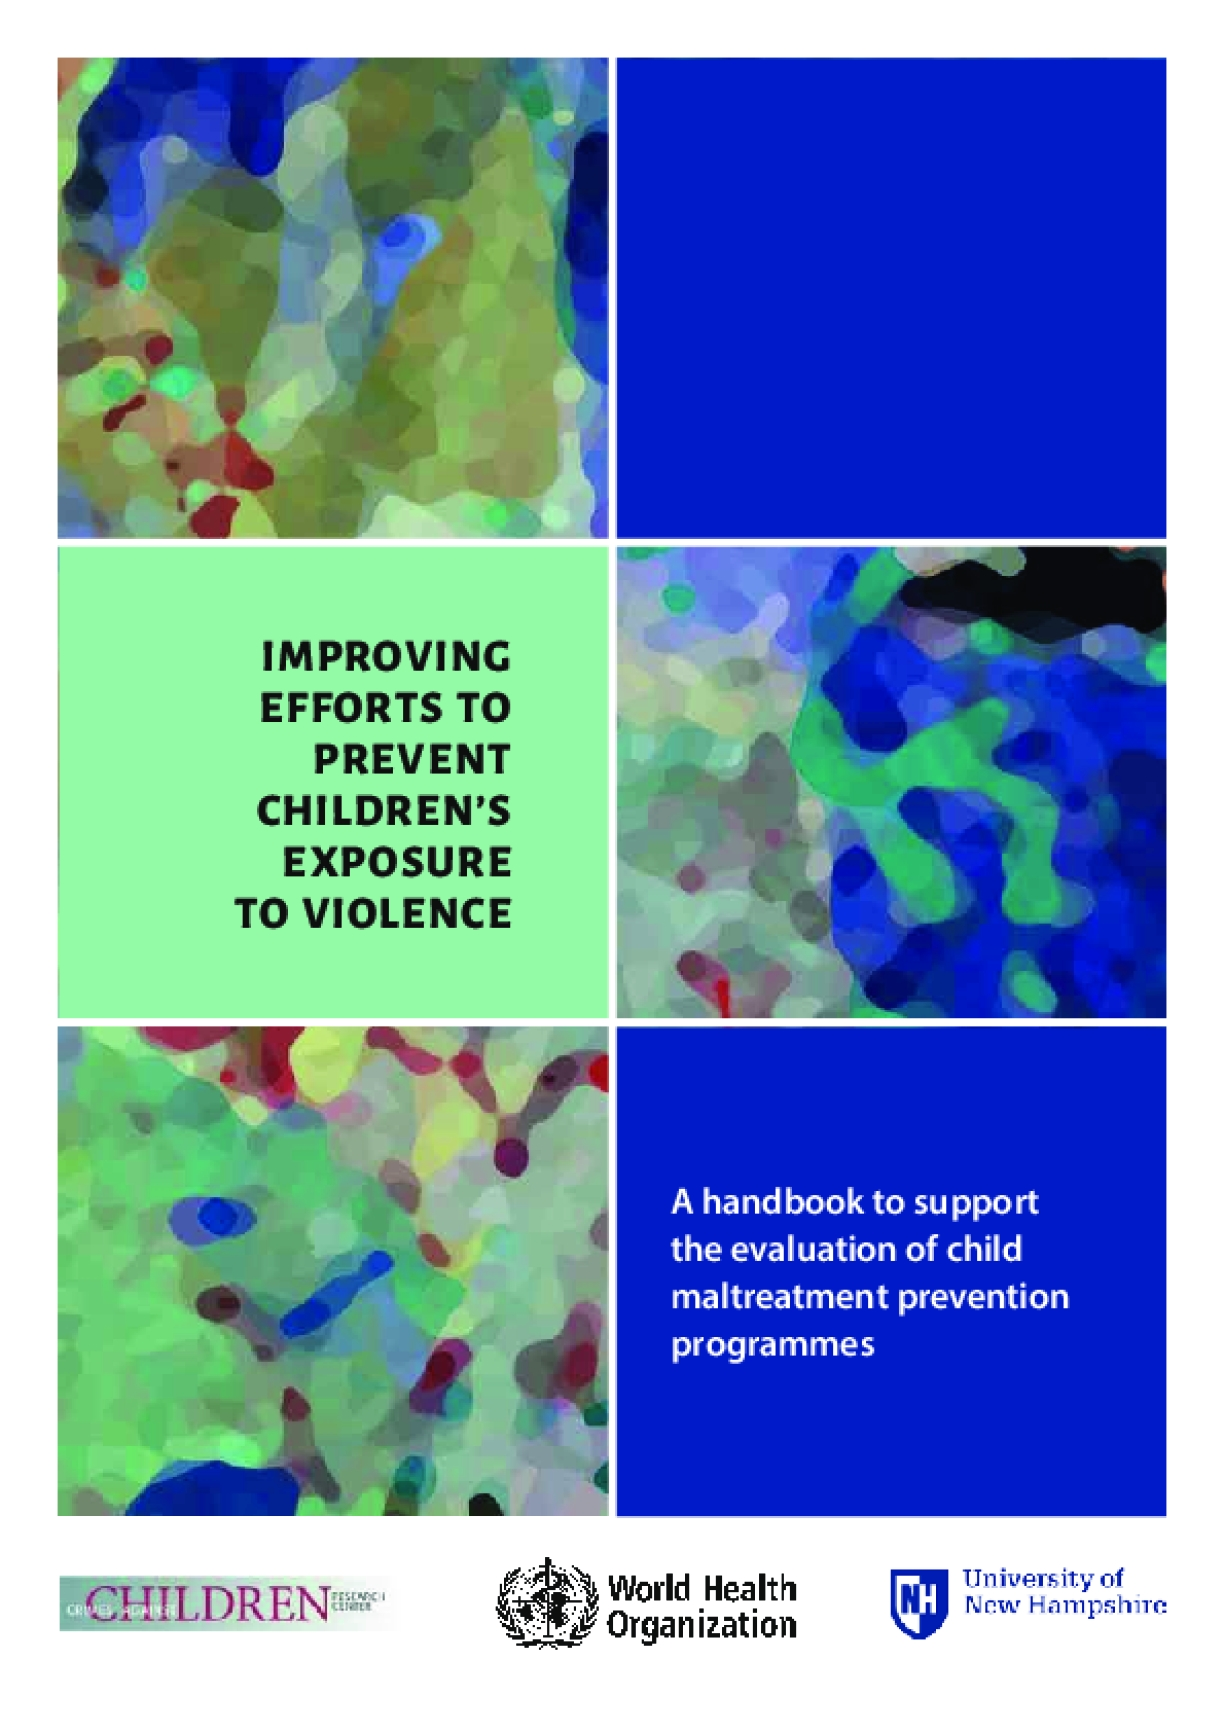 Handbook to Support Evaluation of Child Maltreatment